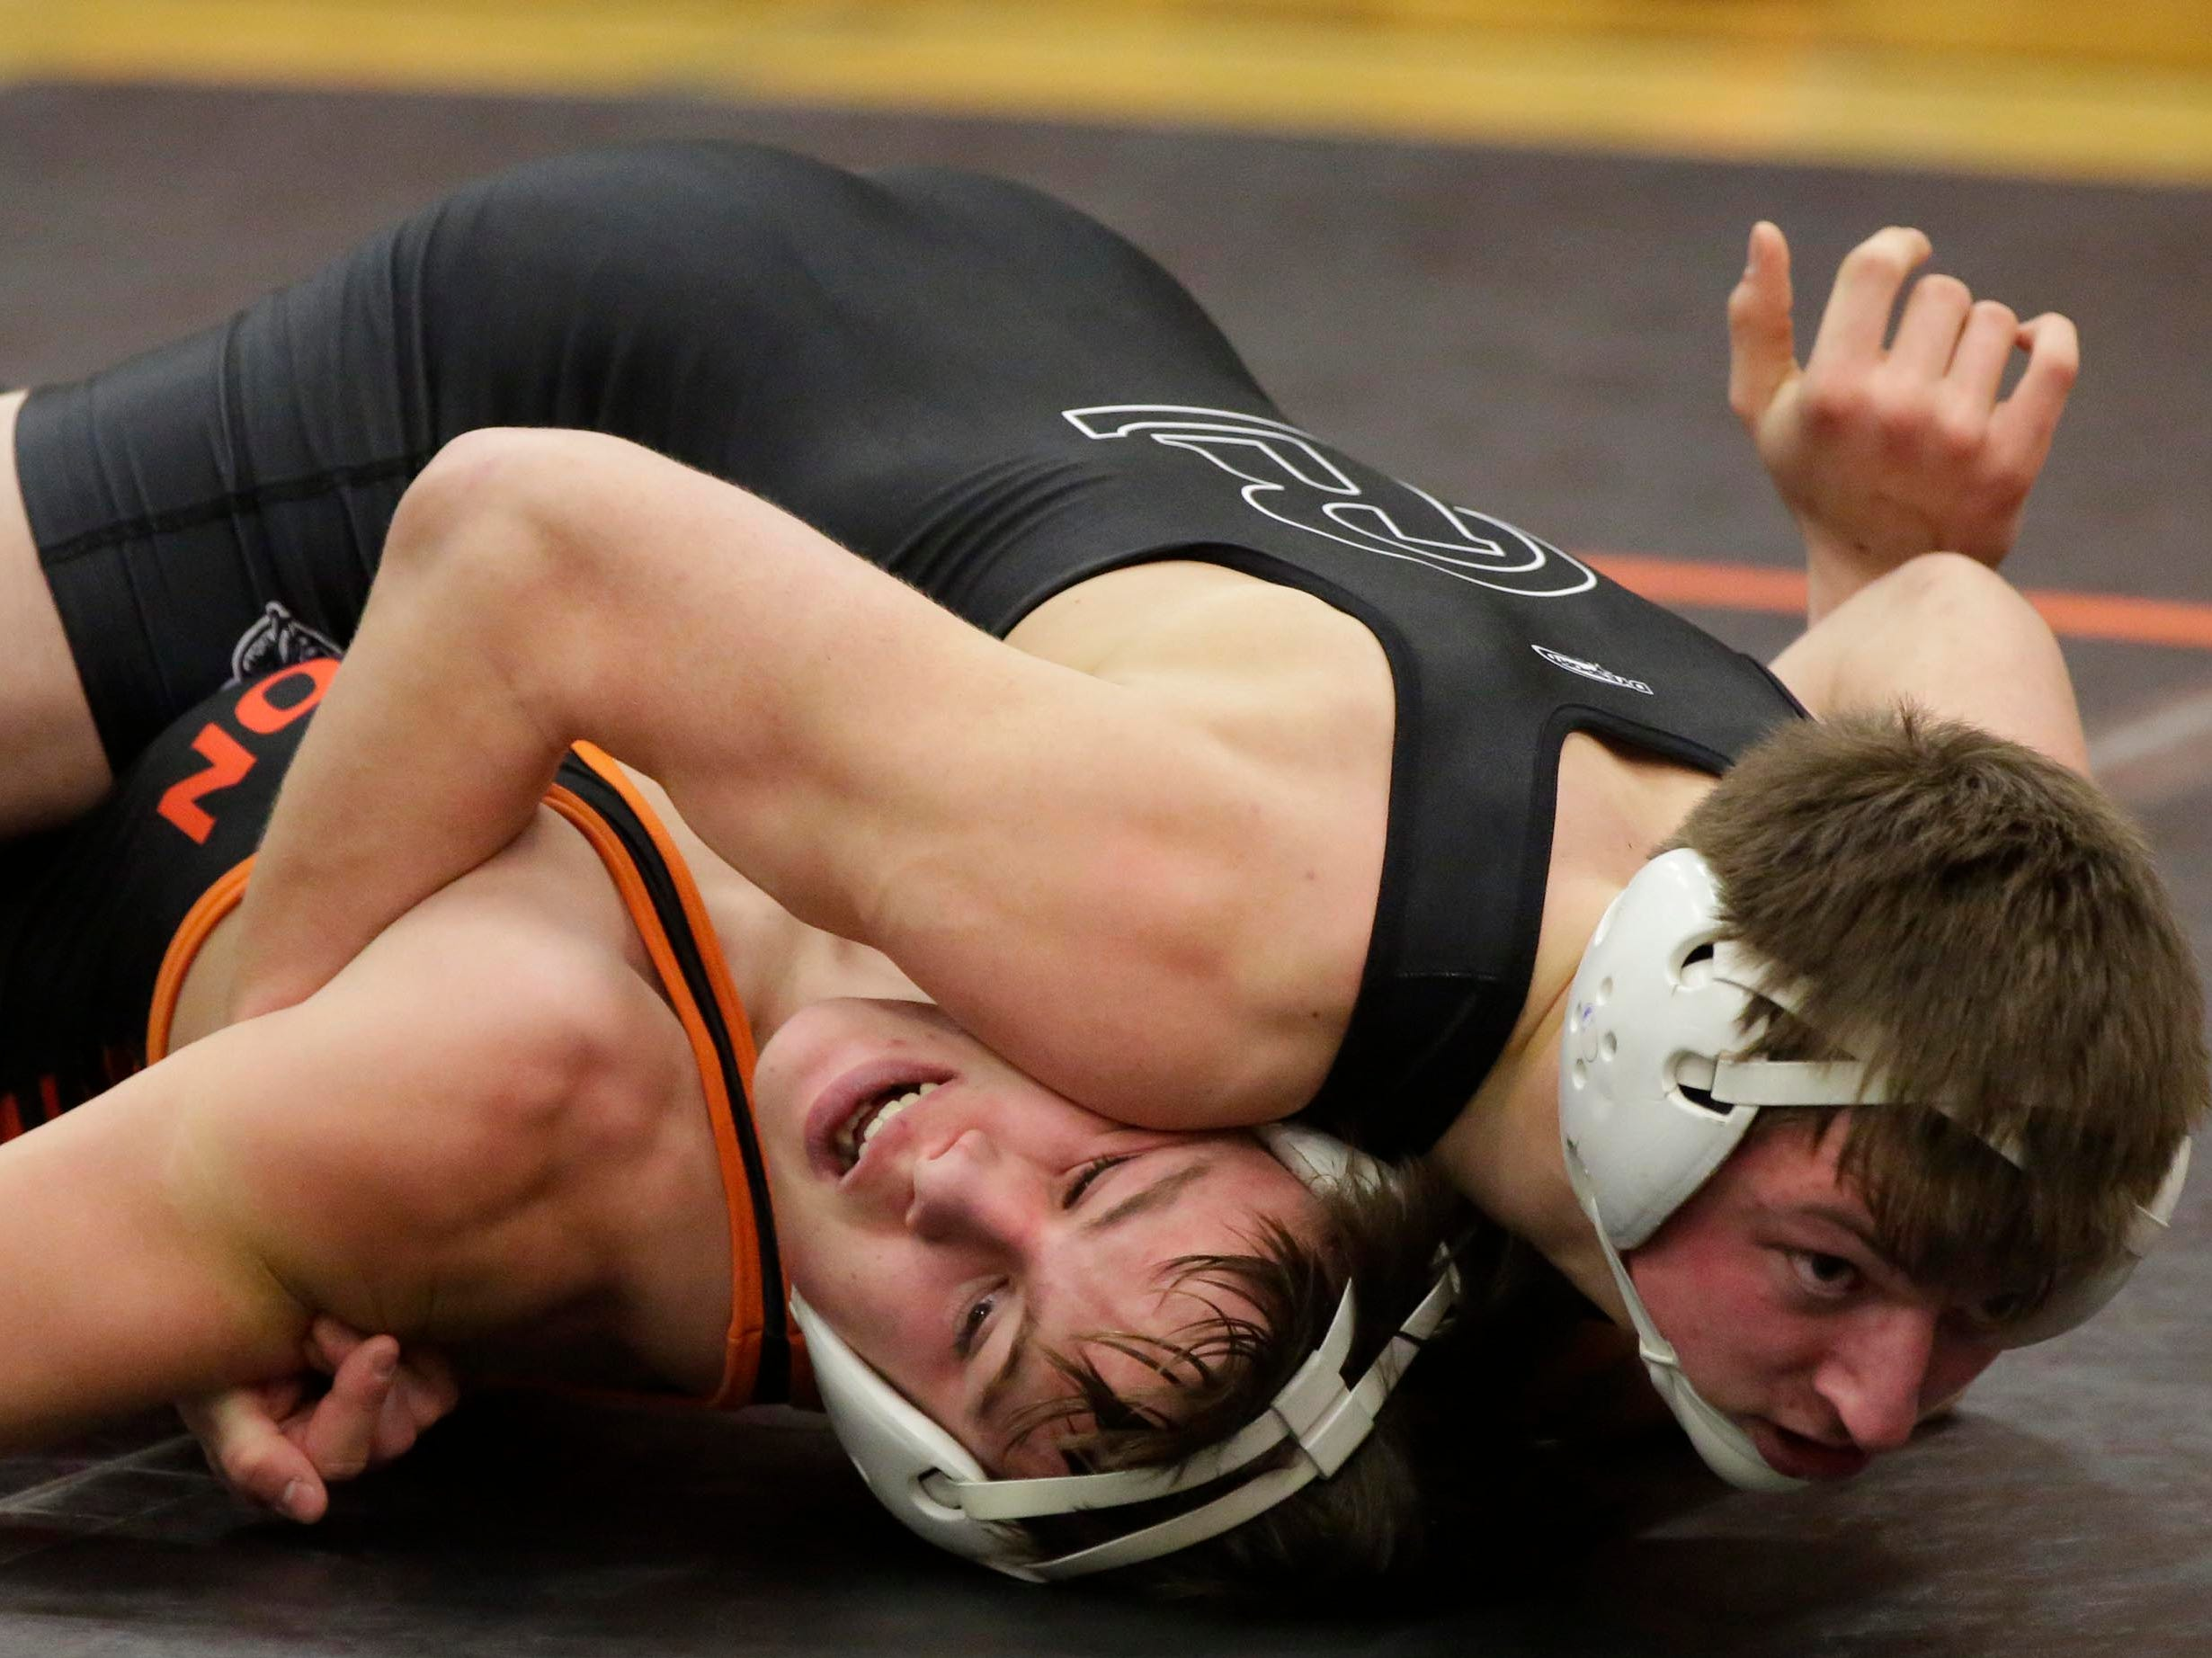 Random Lake's Joey Bock, right, wrestles Horicon's Marshall Coffey, bottom, in a 145-pound match at the WIAA Div. 3 Wrestling Regional, Saturday, February 9, 2019, in Oakfield, Wis. 